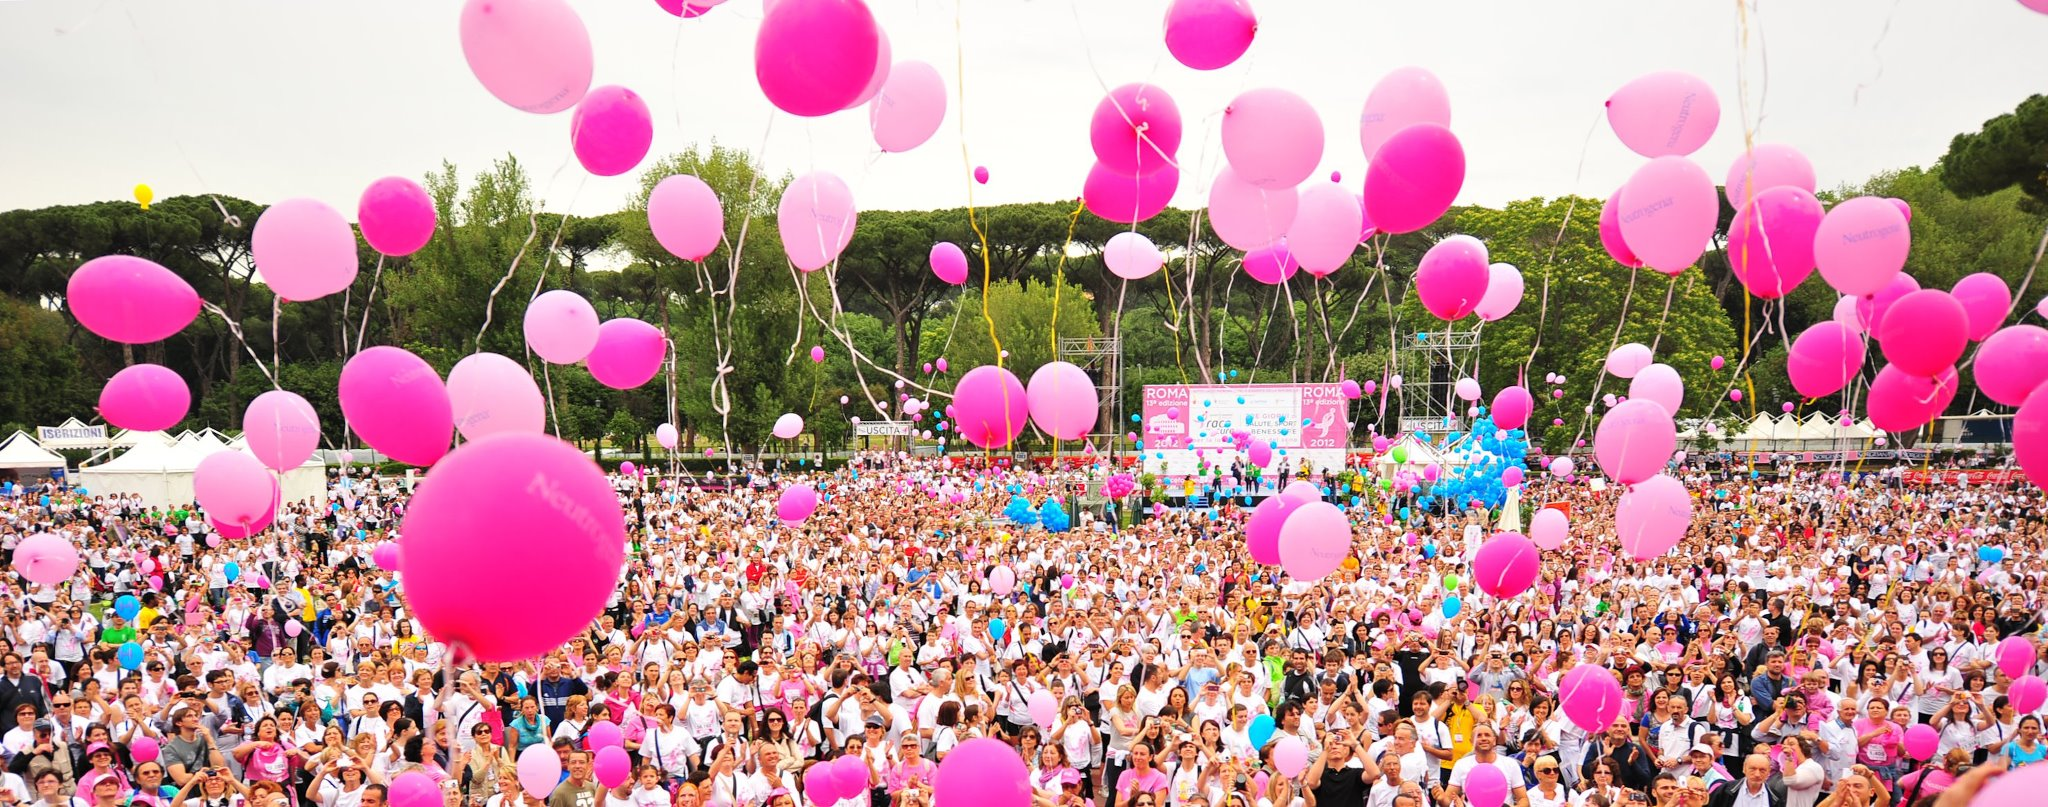 Race for the Cure: a Roma contro il tumore al seno.